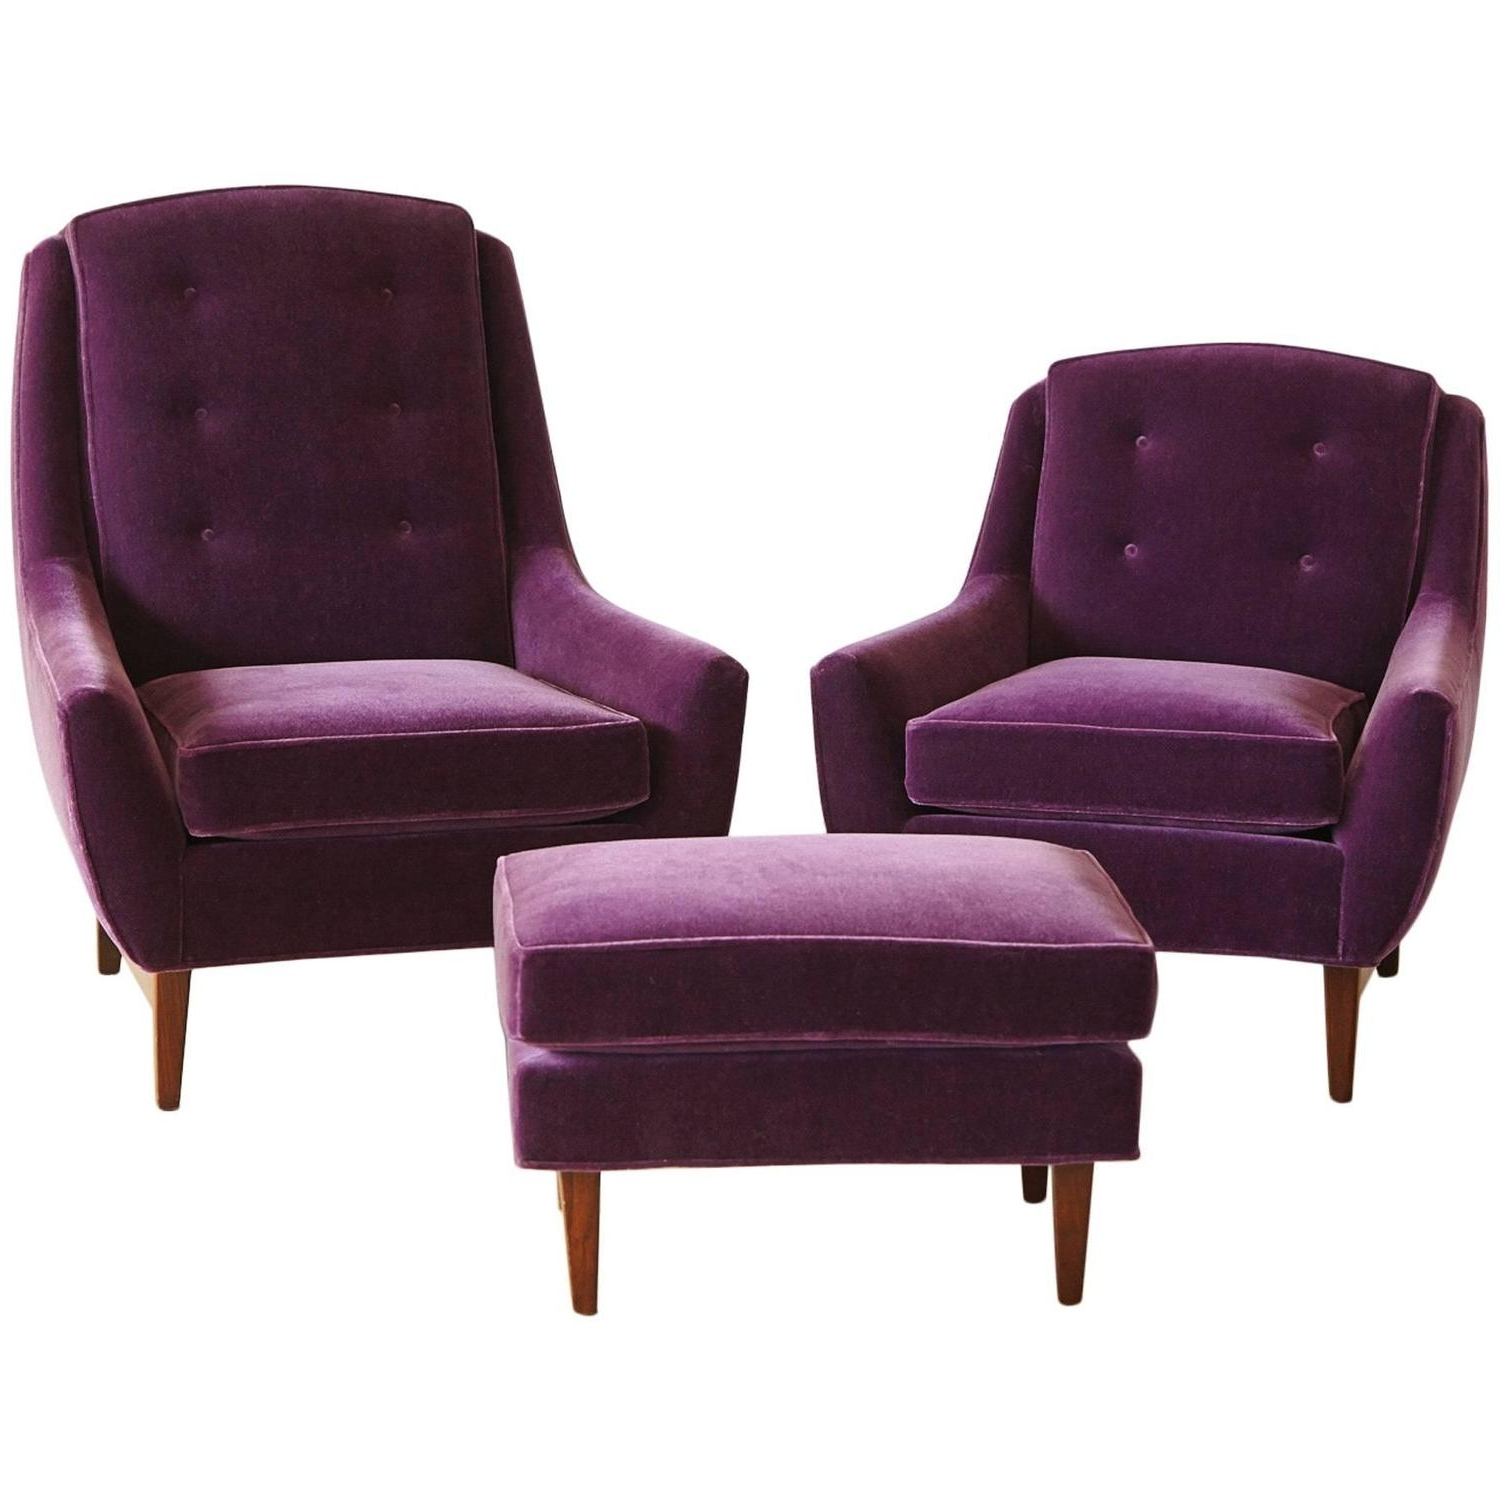 Chaise Lounge Chairs With Ottoman Inside Most Current Convertible Chair : Chairs Living Room Purple Chaise Lounge Sale (View 4 of 15)